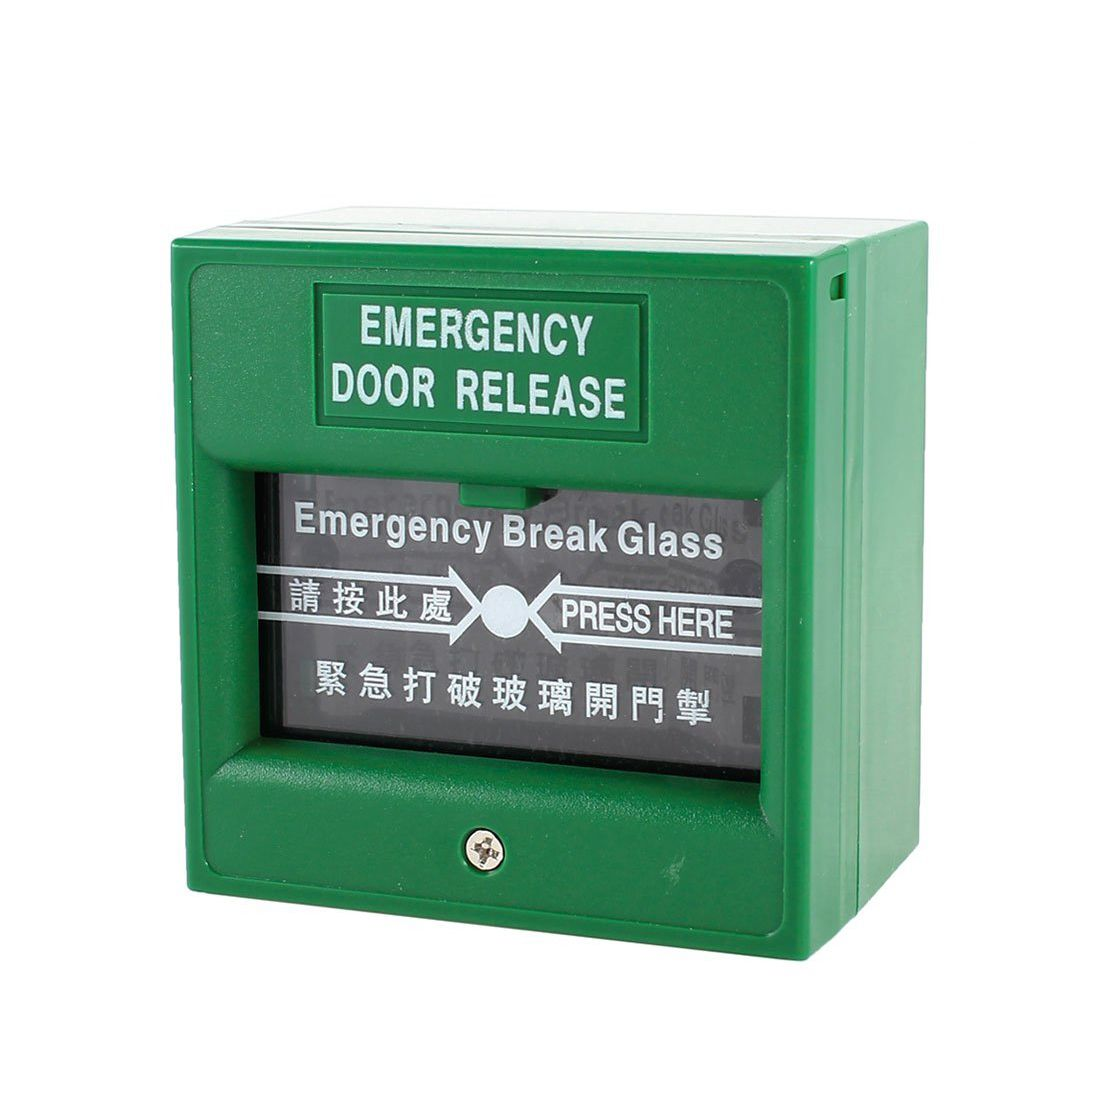 MOOL Green Security Alarm Fire Break glass Button Emergency Door Release free shipping plastic break glass emergency exit escape life saving switch button fire alarm home safely security red